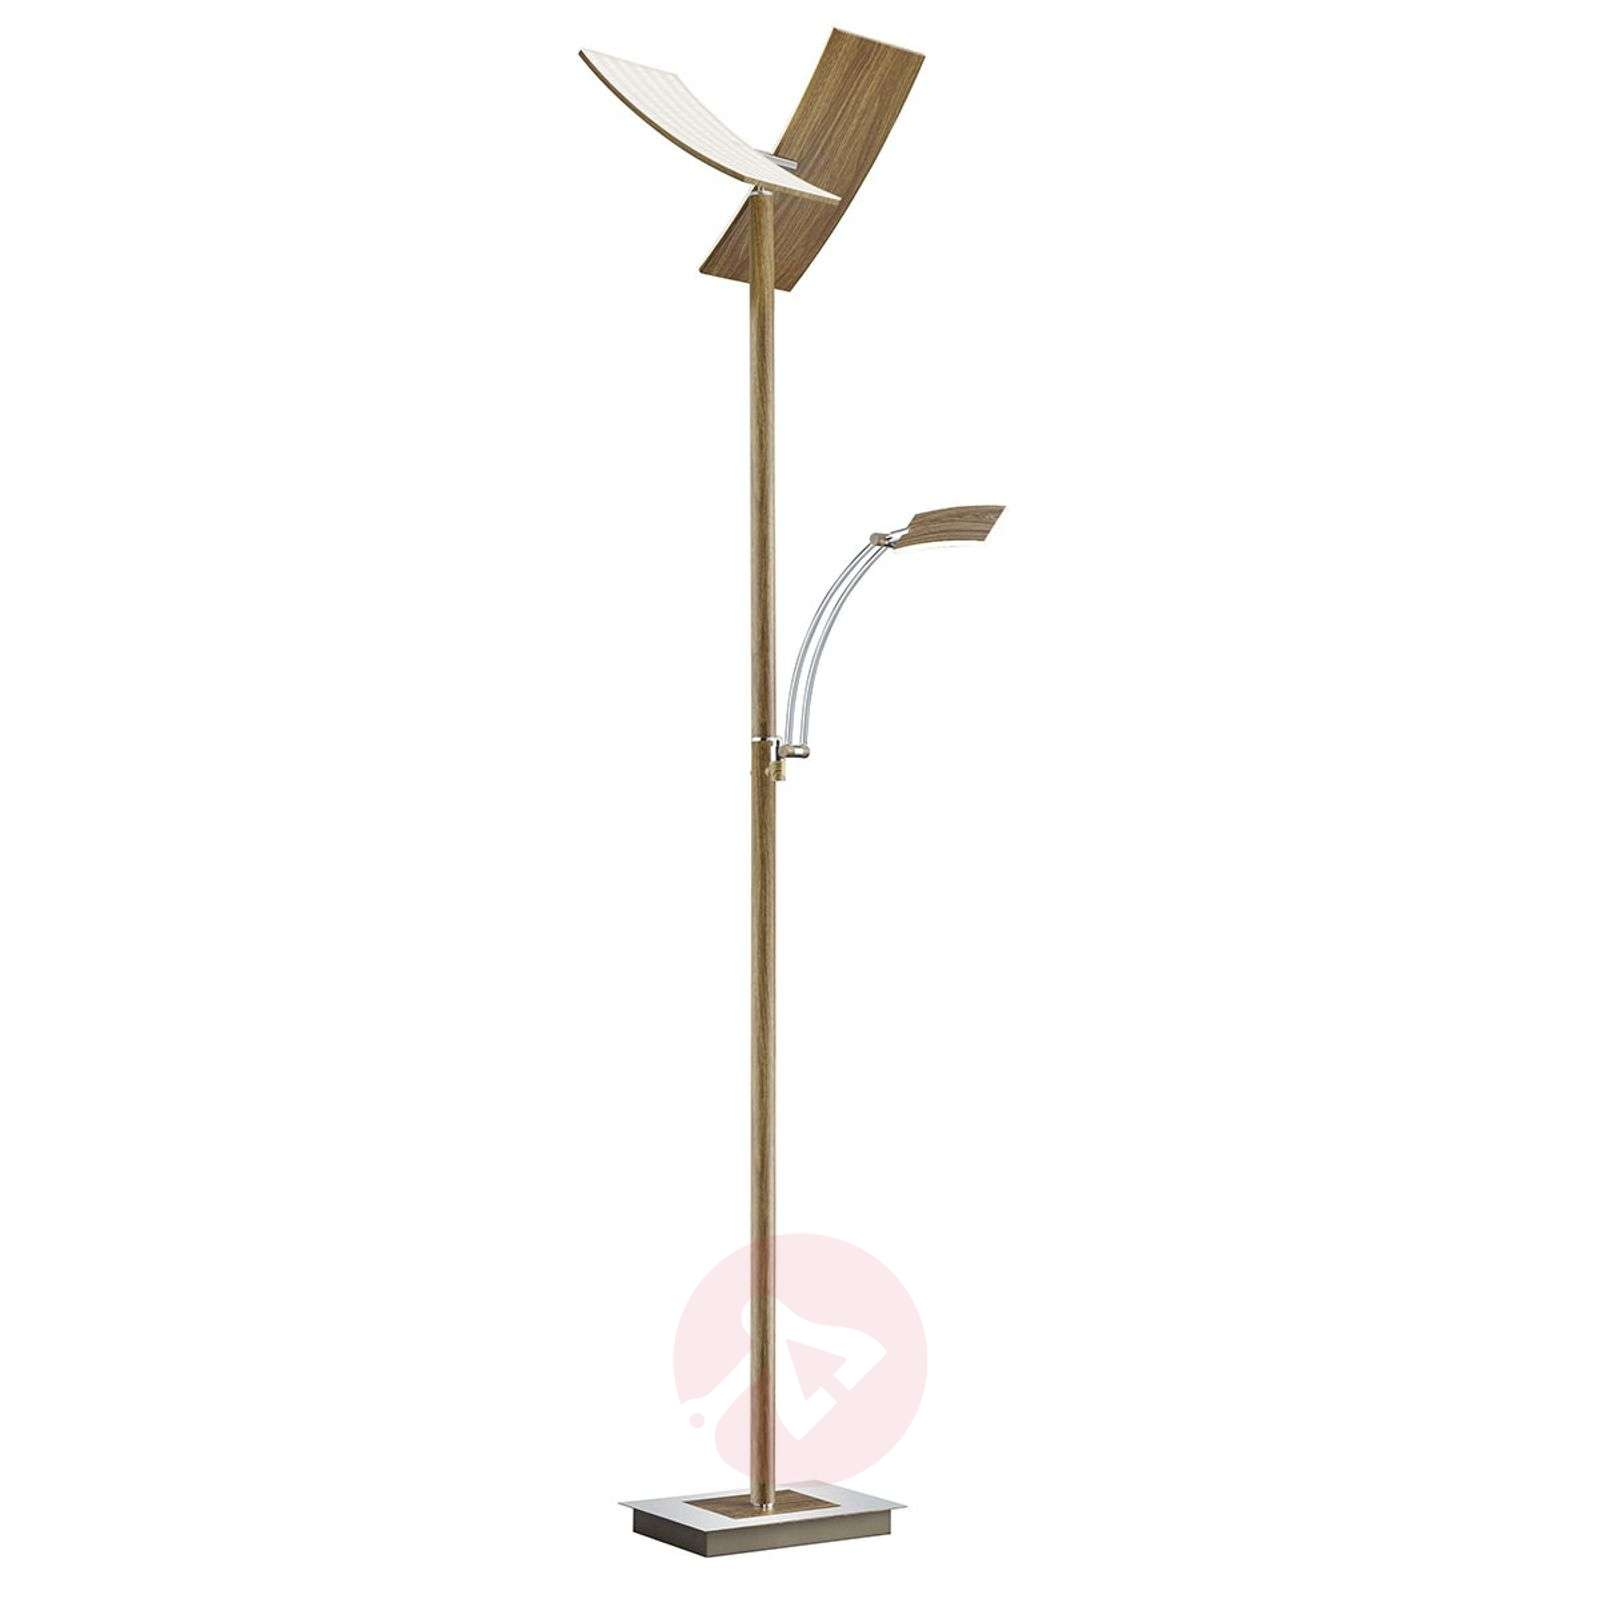 Lampadaire LED Duo dimmable, bois laqué-1554008-01